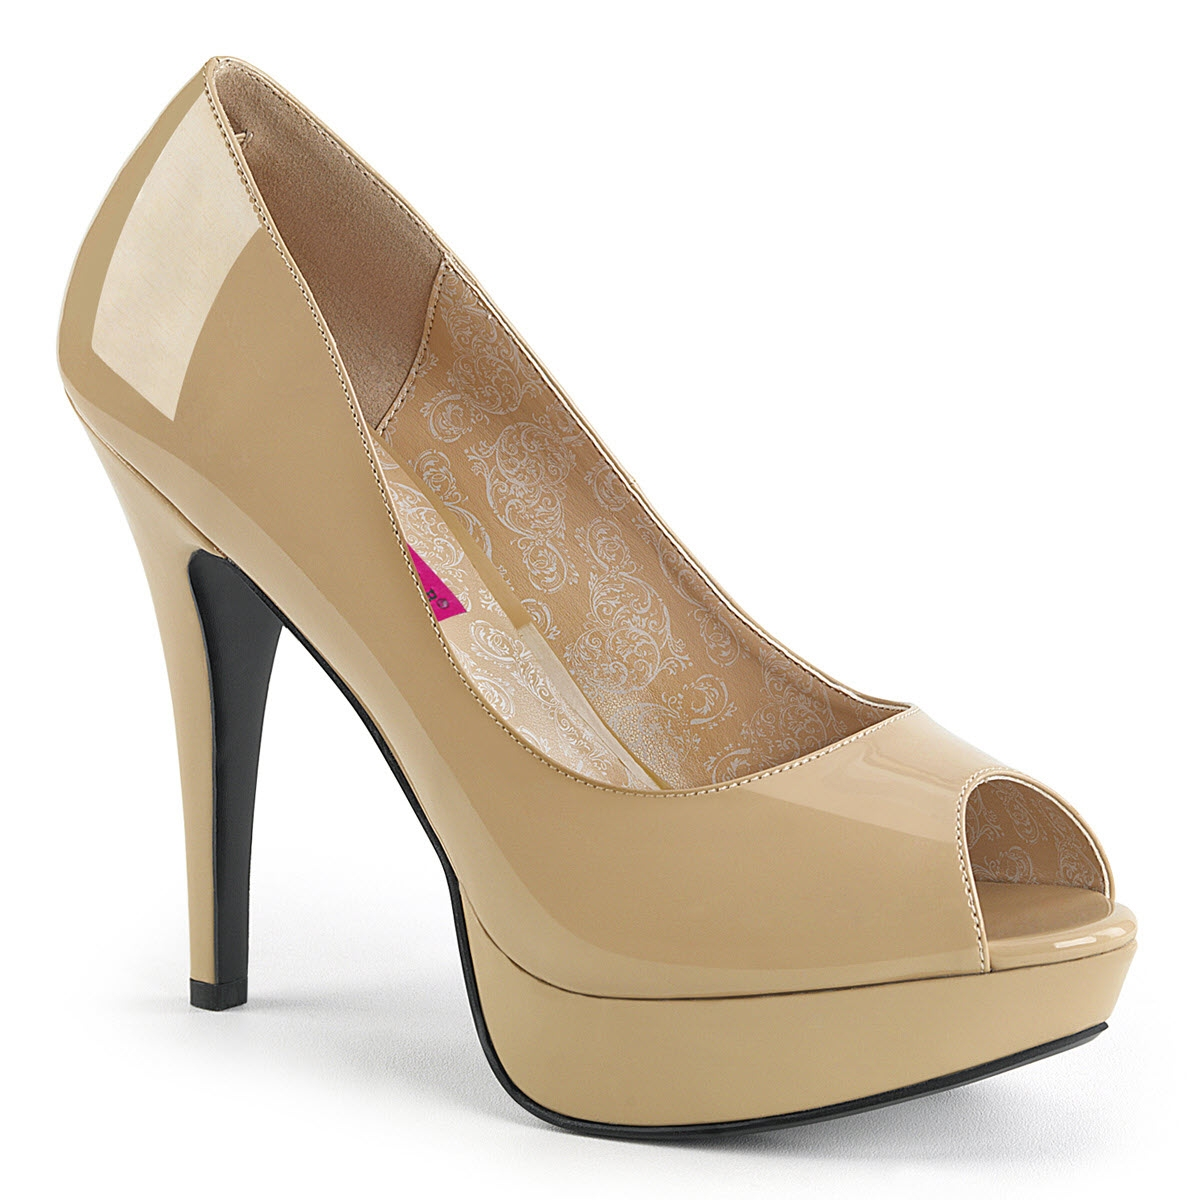 Image of Peep-Toe Pumps, CHLOE-01, Lack, Beige-16